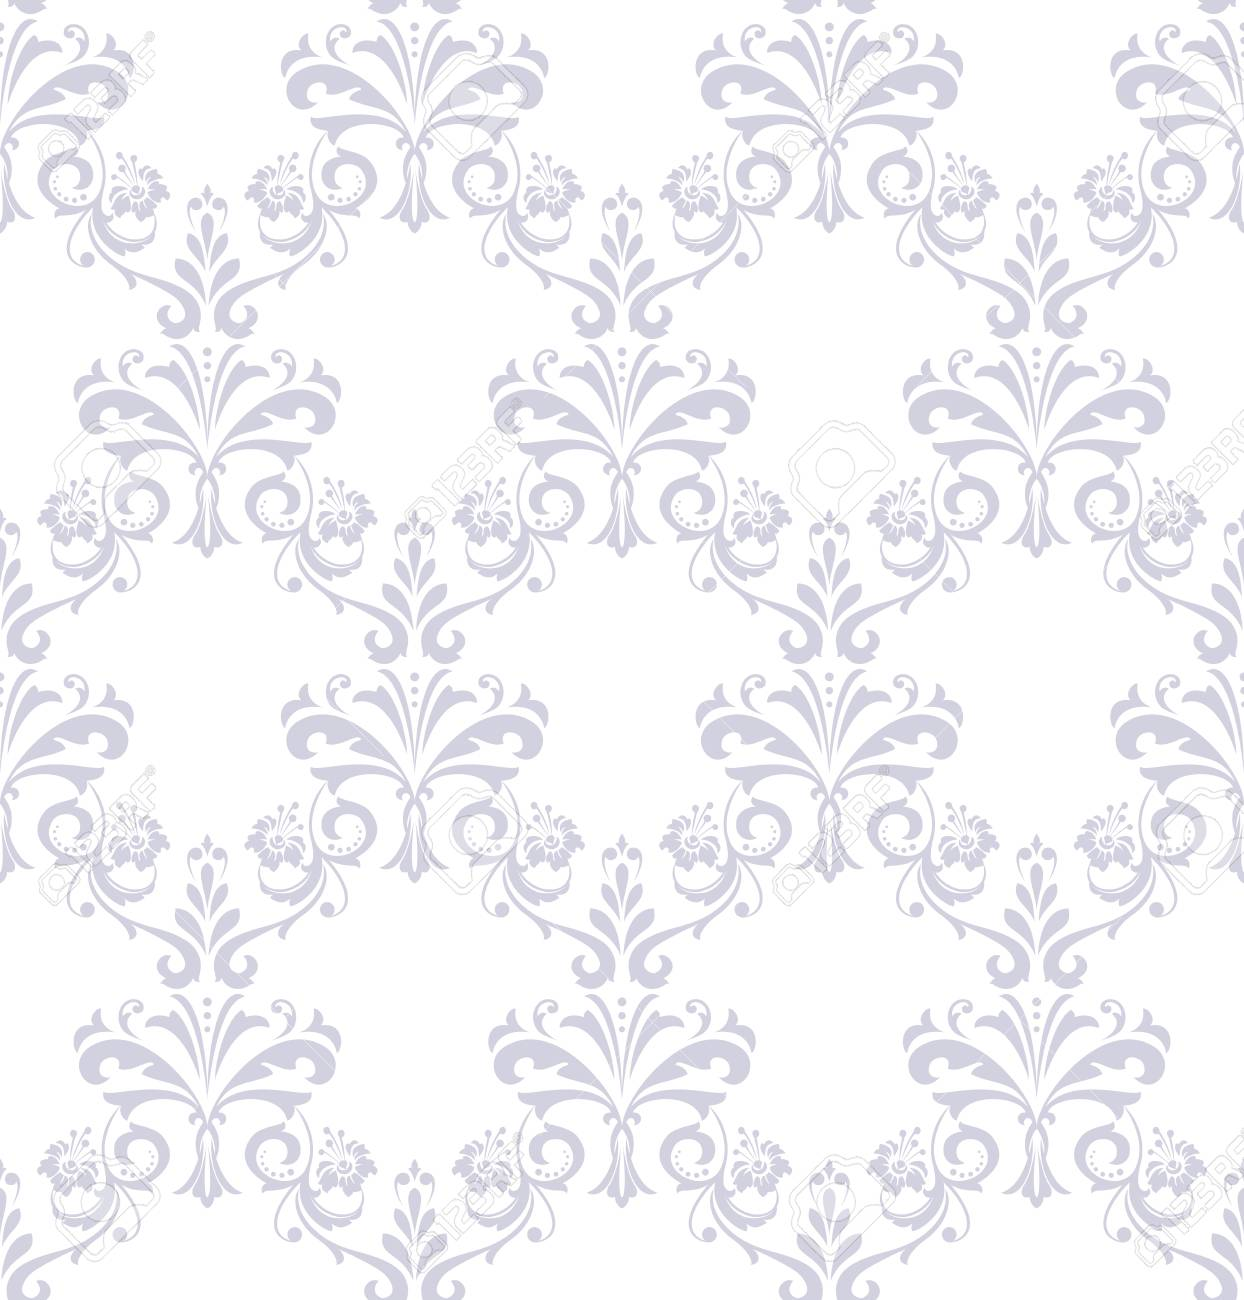 Floral Pattern Vintage Wallpaper In The Baroque Style Seamless Vector Background White And Grey Ornament For Fabric Wallpaper Packaging Ornate